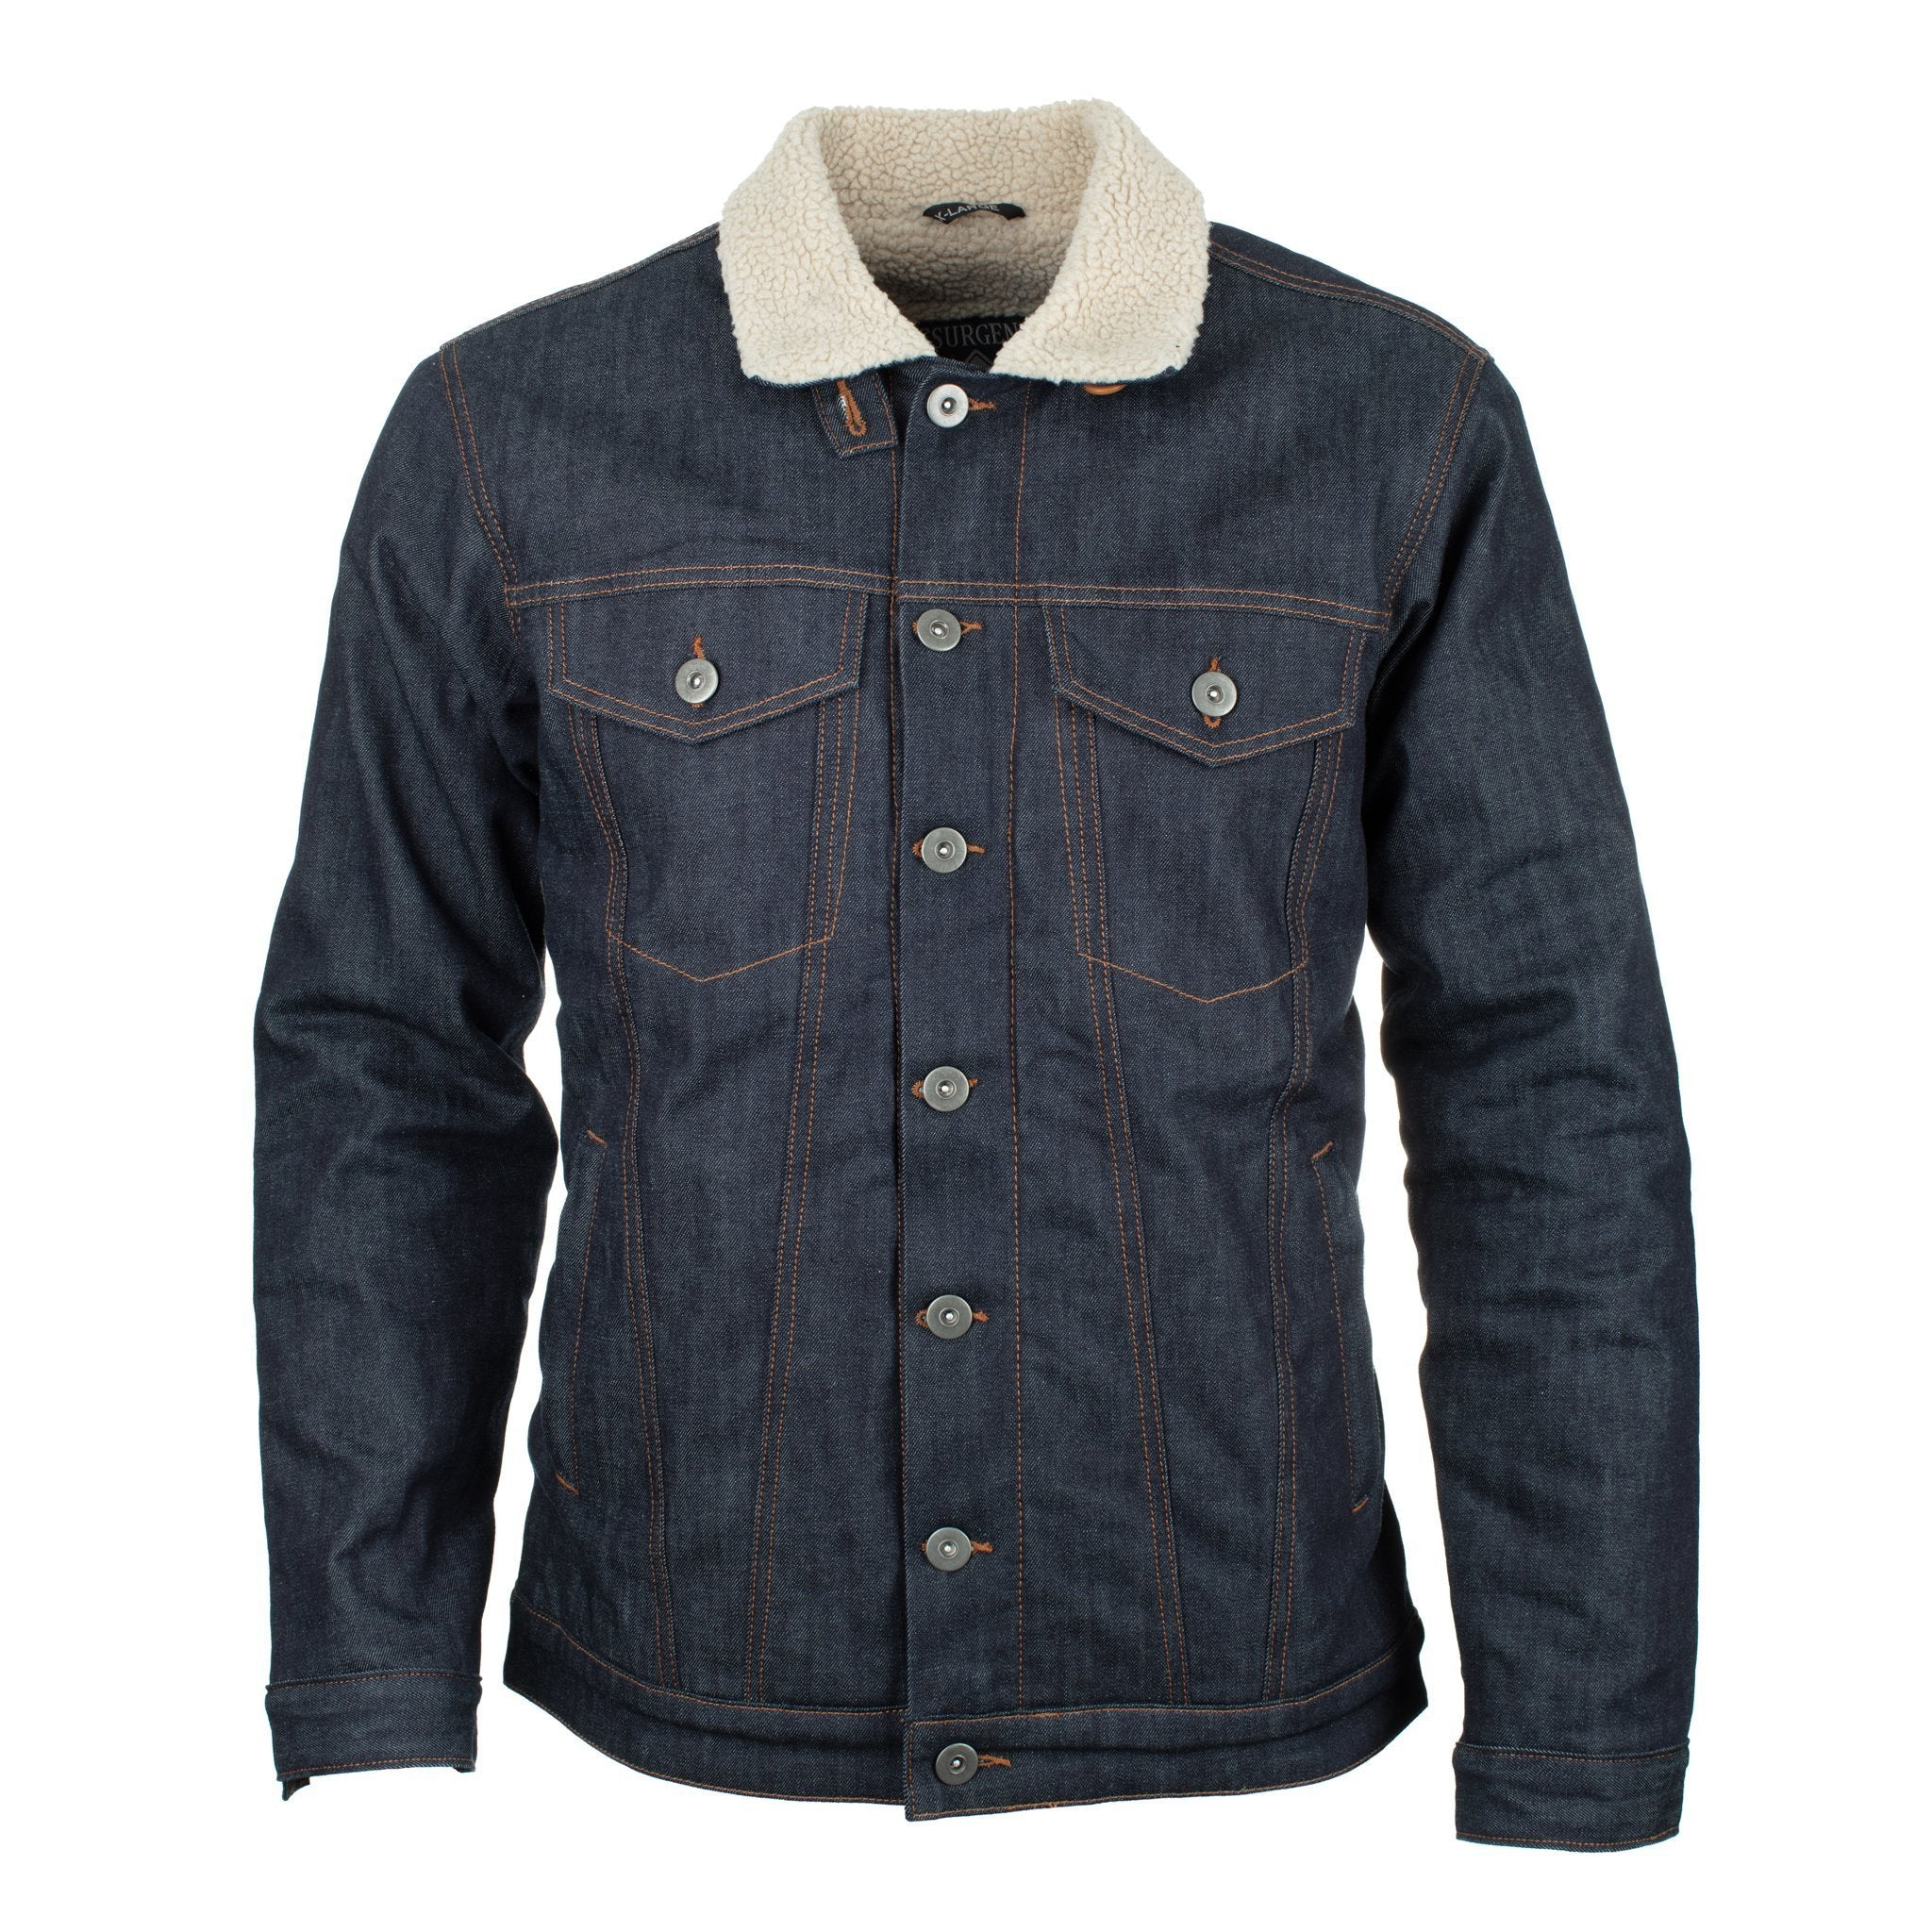 Lee Sherpa Jacket Giacca in Jeans Uomo